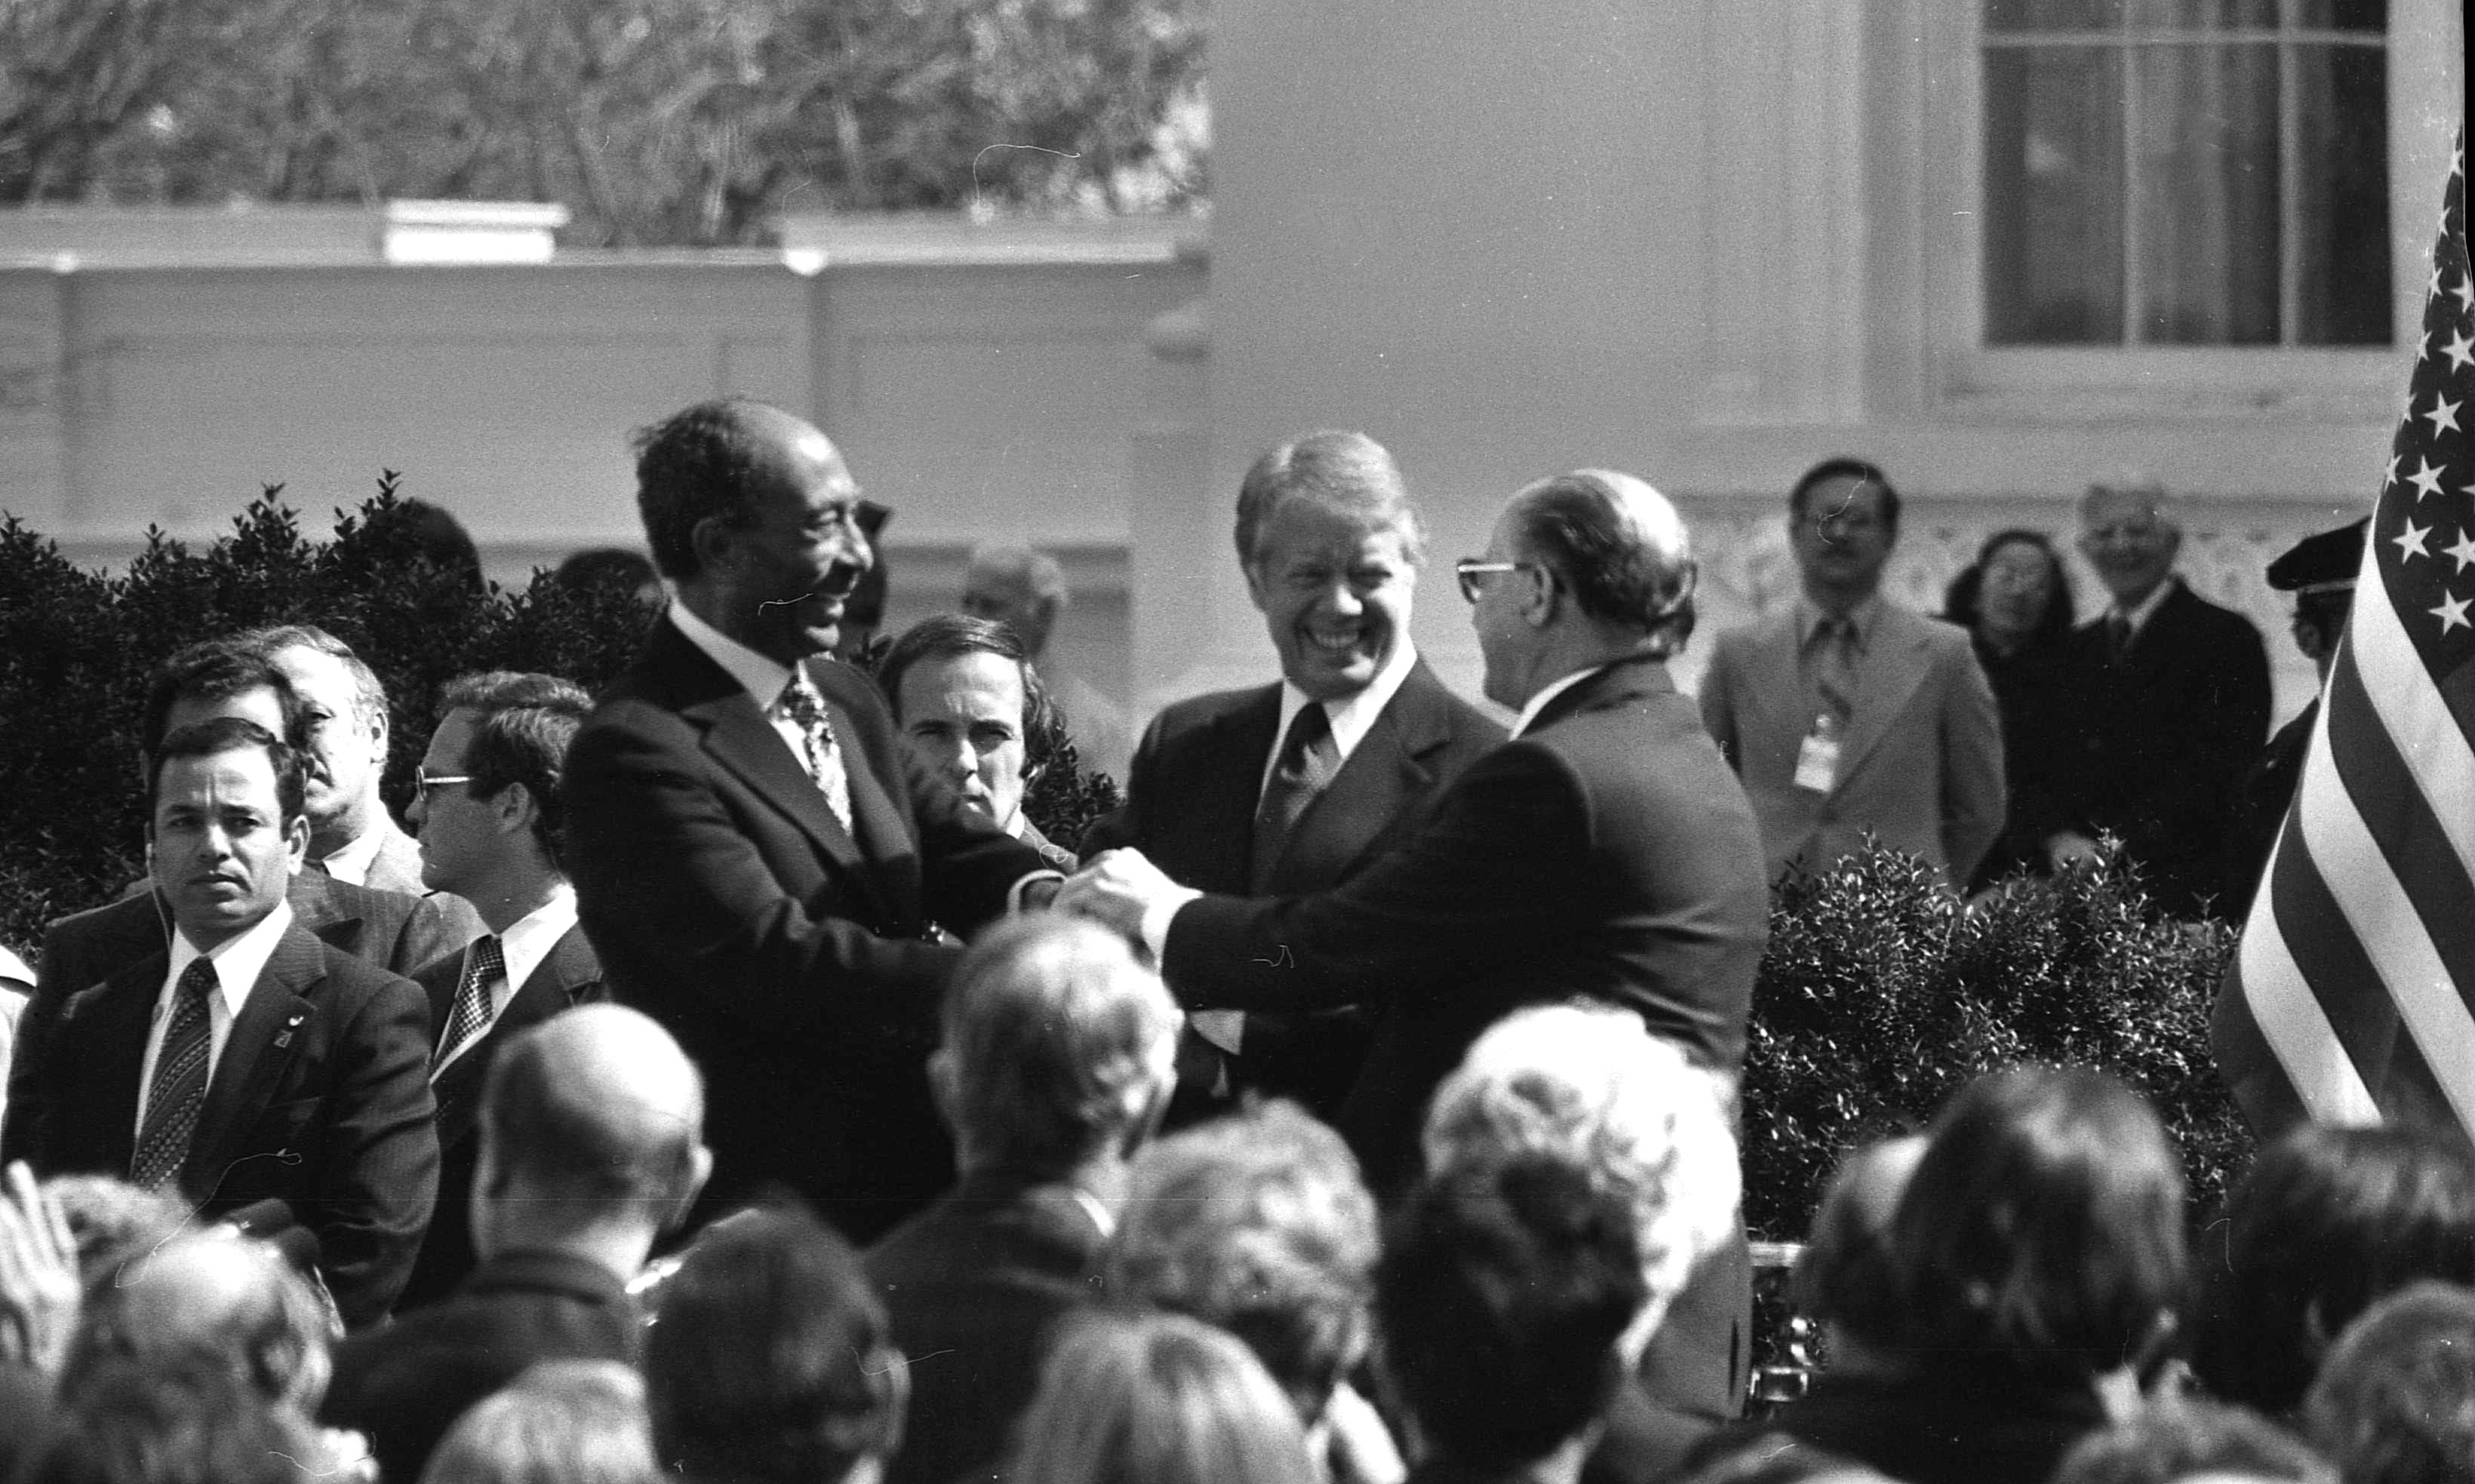 This is the signing ceremony of the Peace Agreement with Egypt, arranged by US President Jimmy Carter.